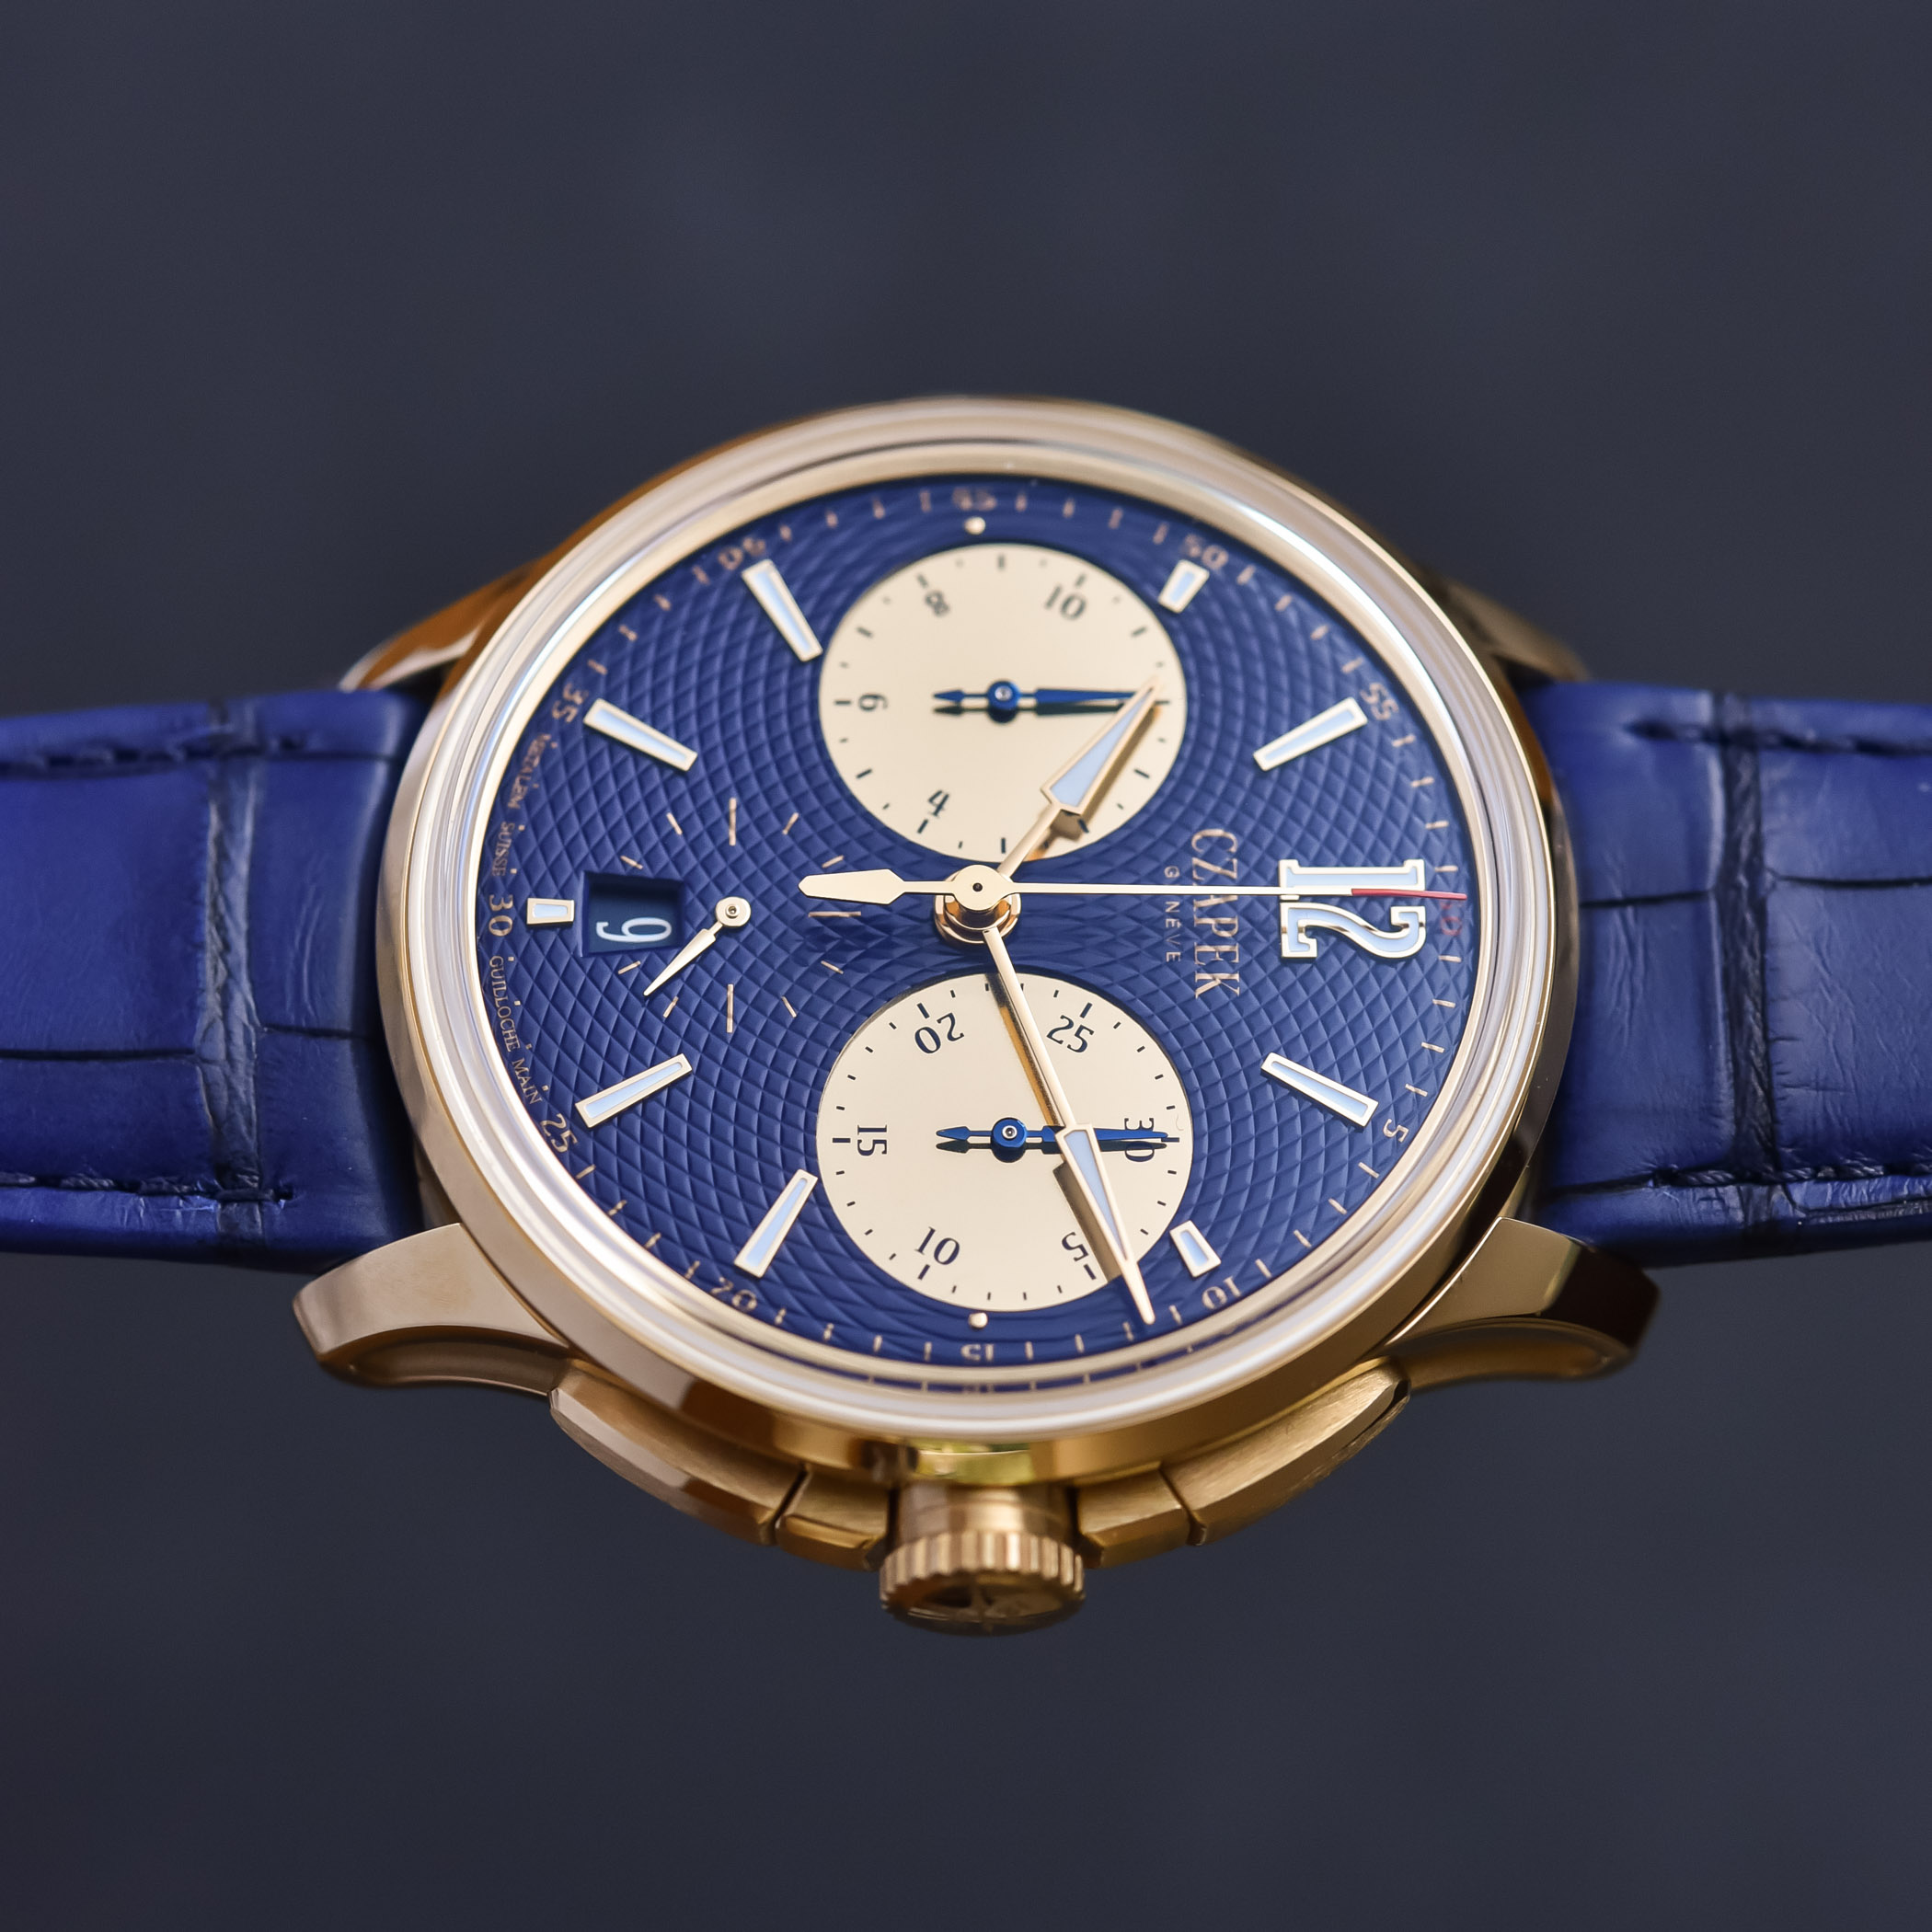 Czapek Faubourg de Cracovie Ocean d'Or Chronograph - 7